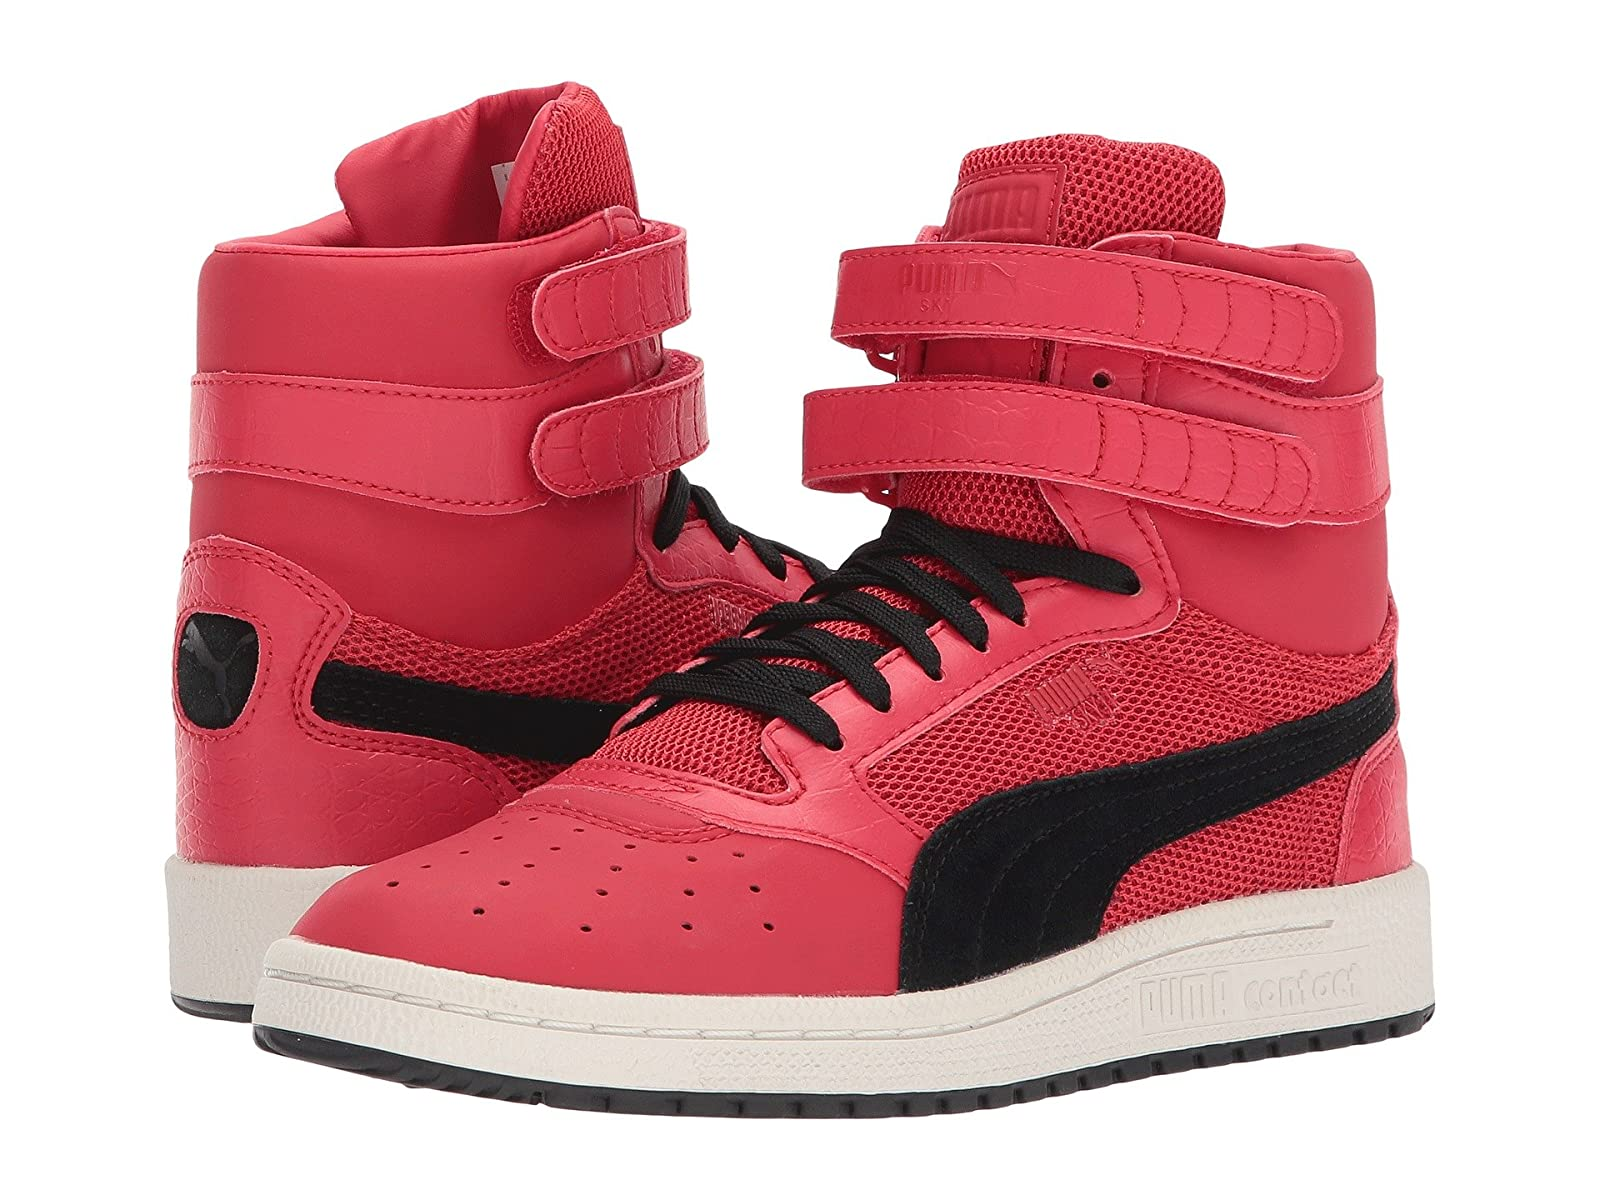 Puma Kids Sky II Hi Color Blocked (Big Kid)Cheap and distinctive eye-catching shoes